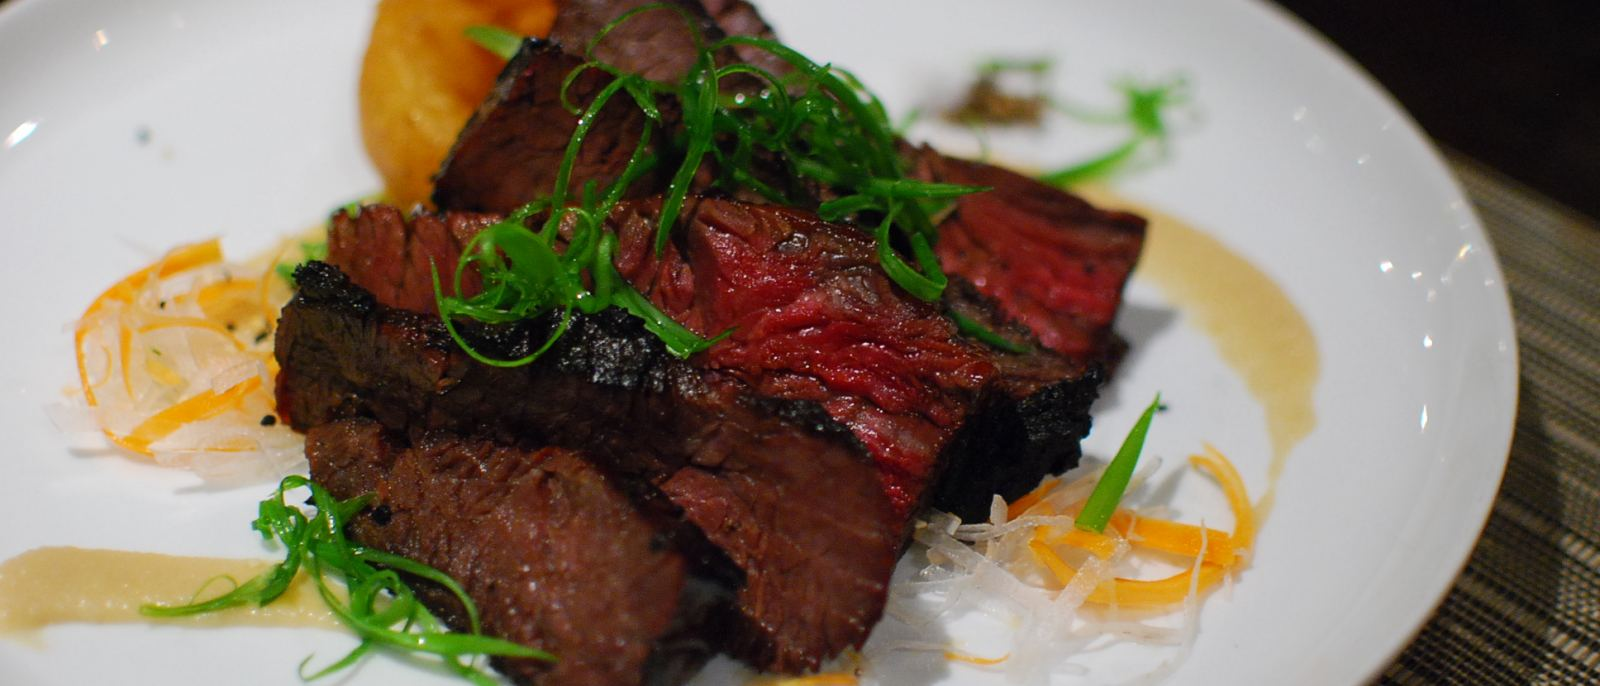 Wilshire Hanger Steak